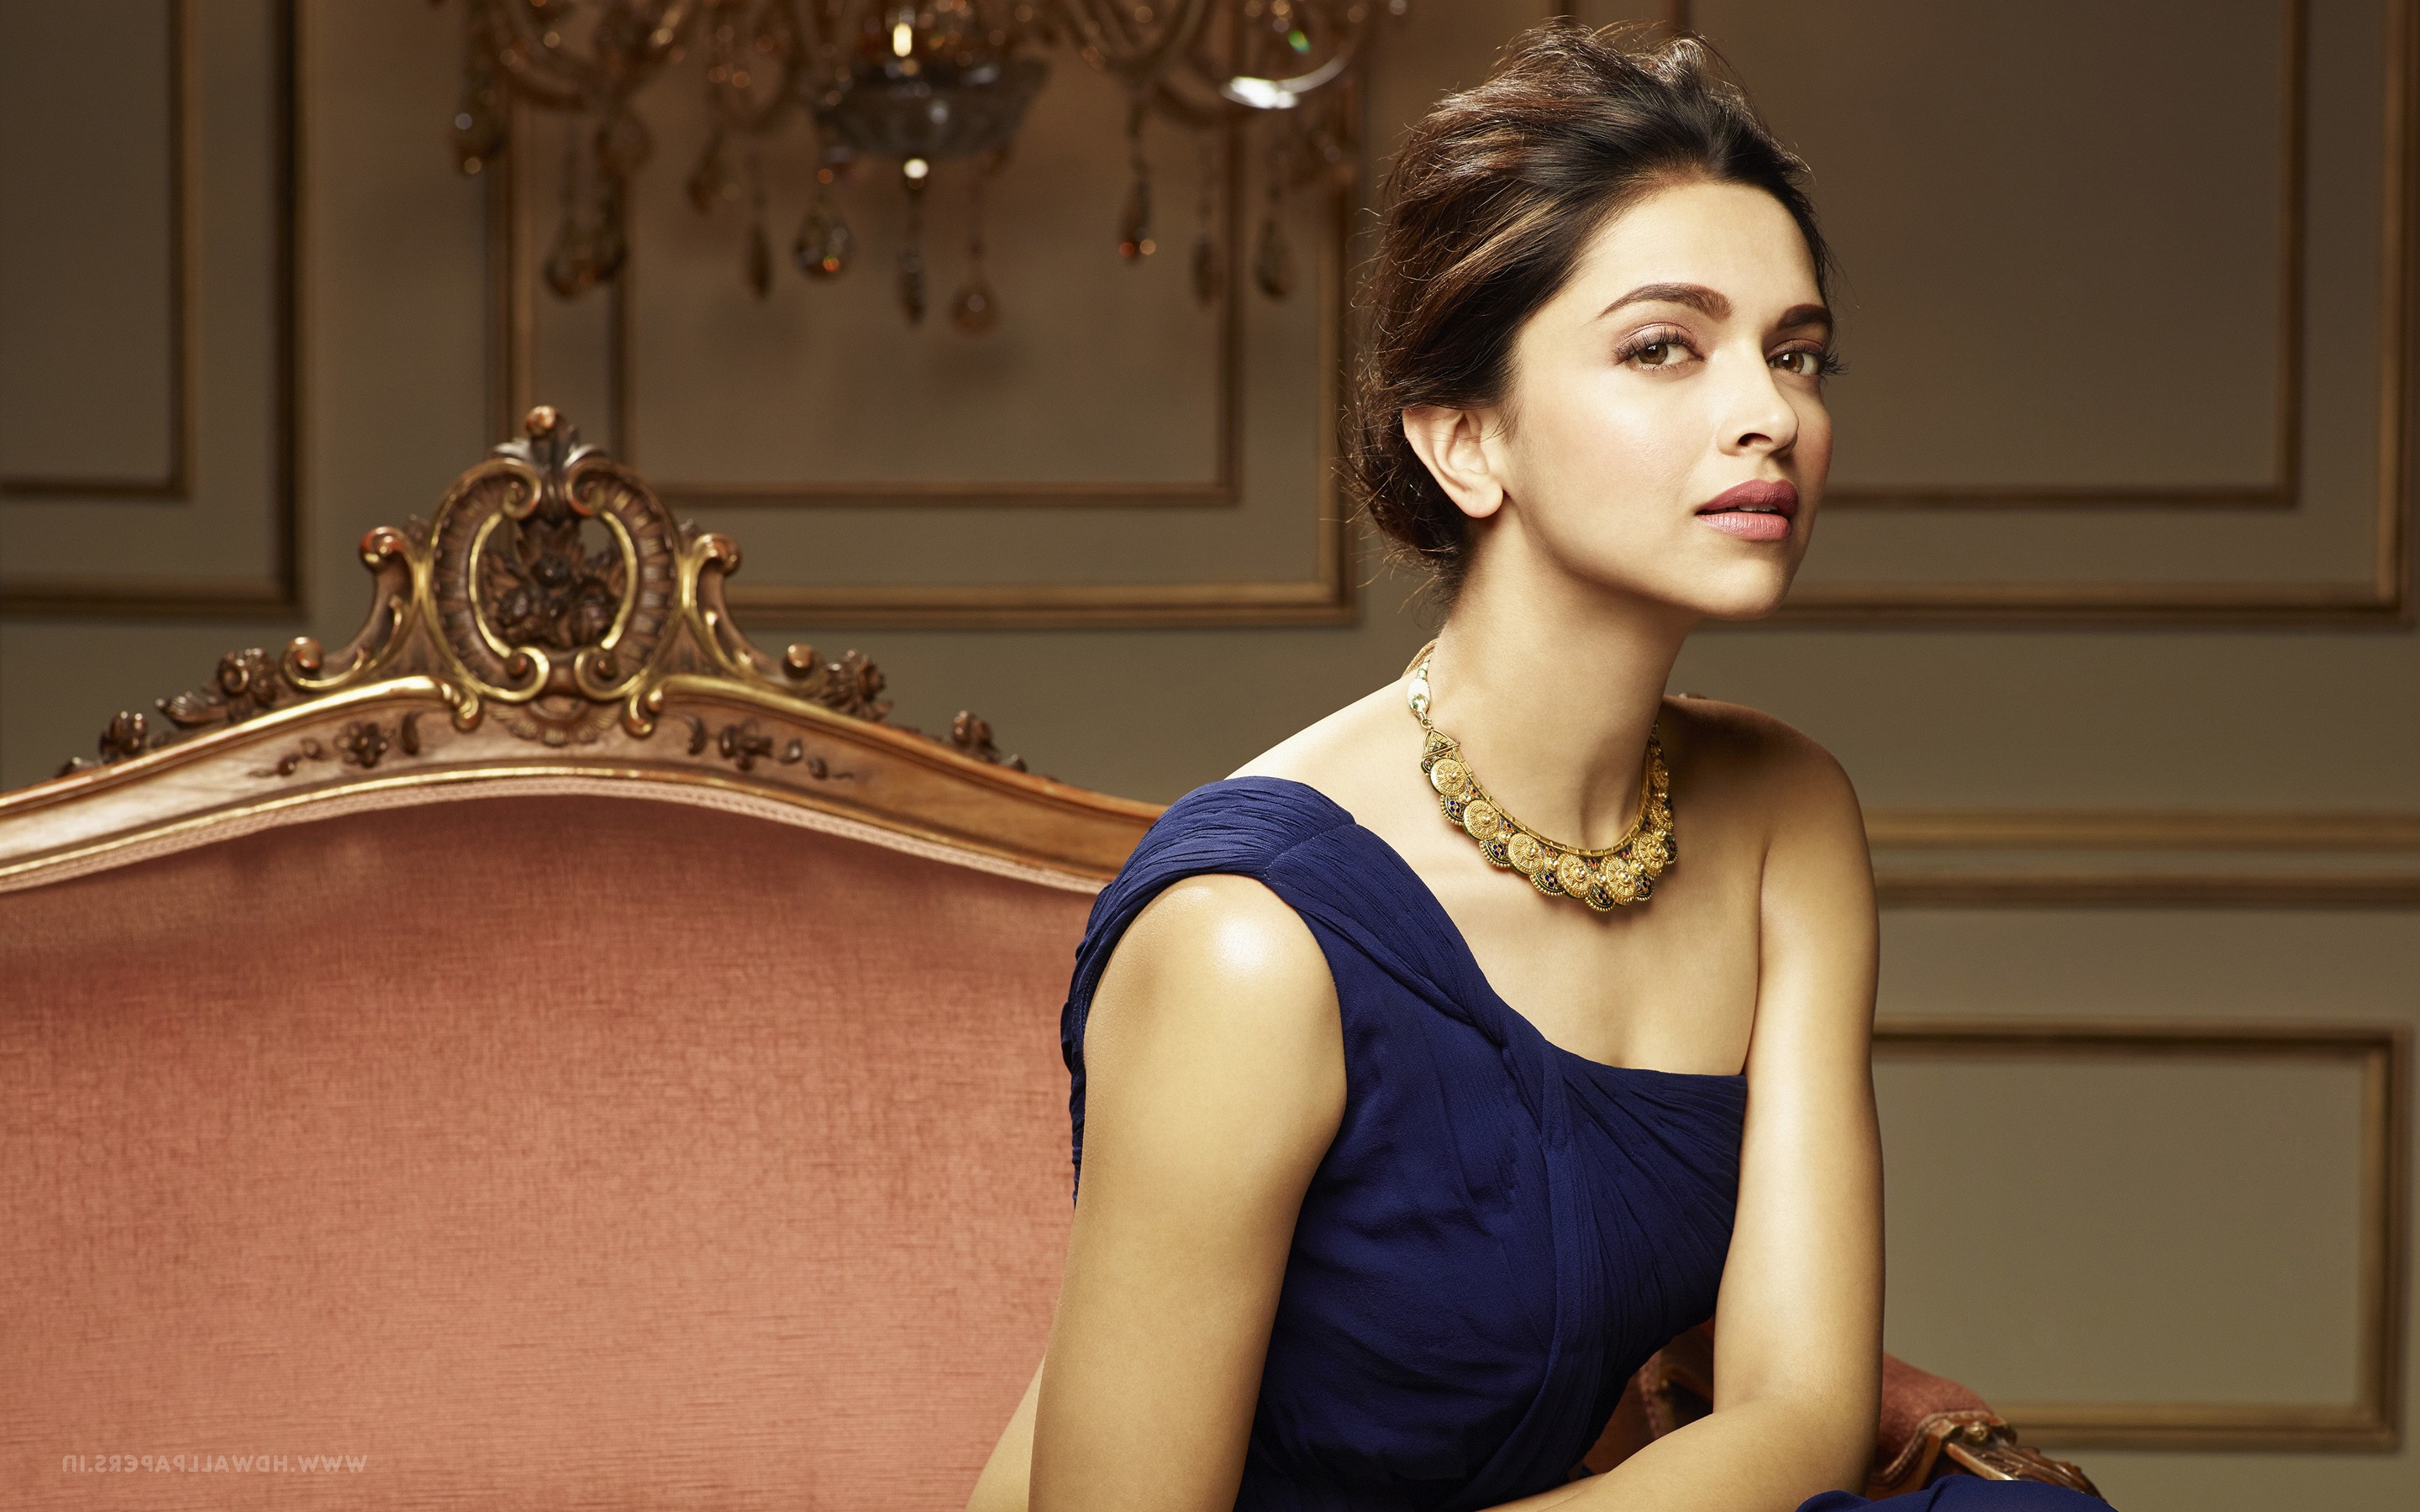 deepika padukone 5, hd celebrities, 4k wallpapers, images